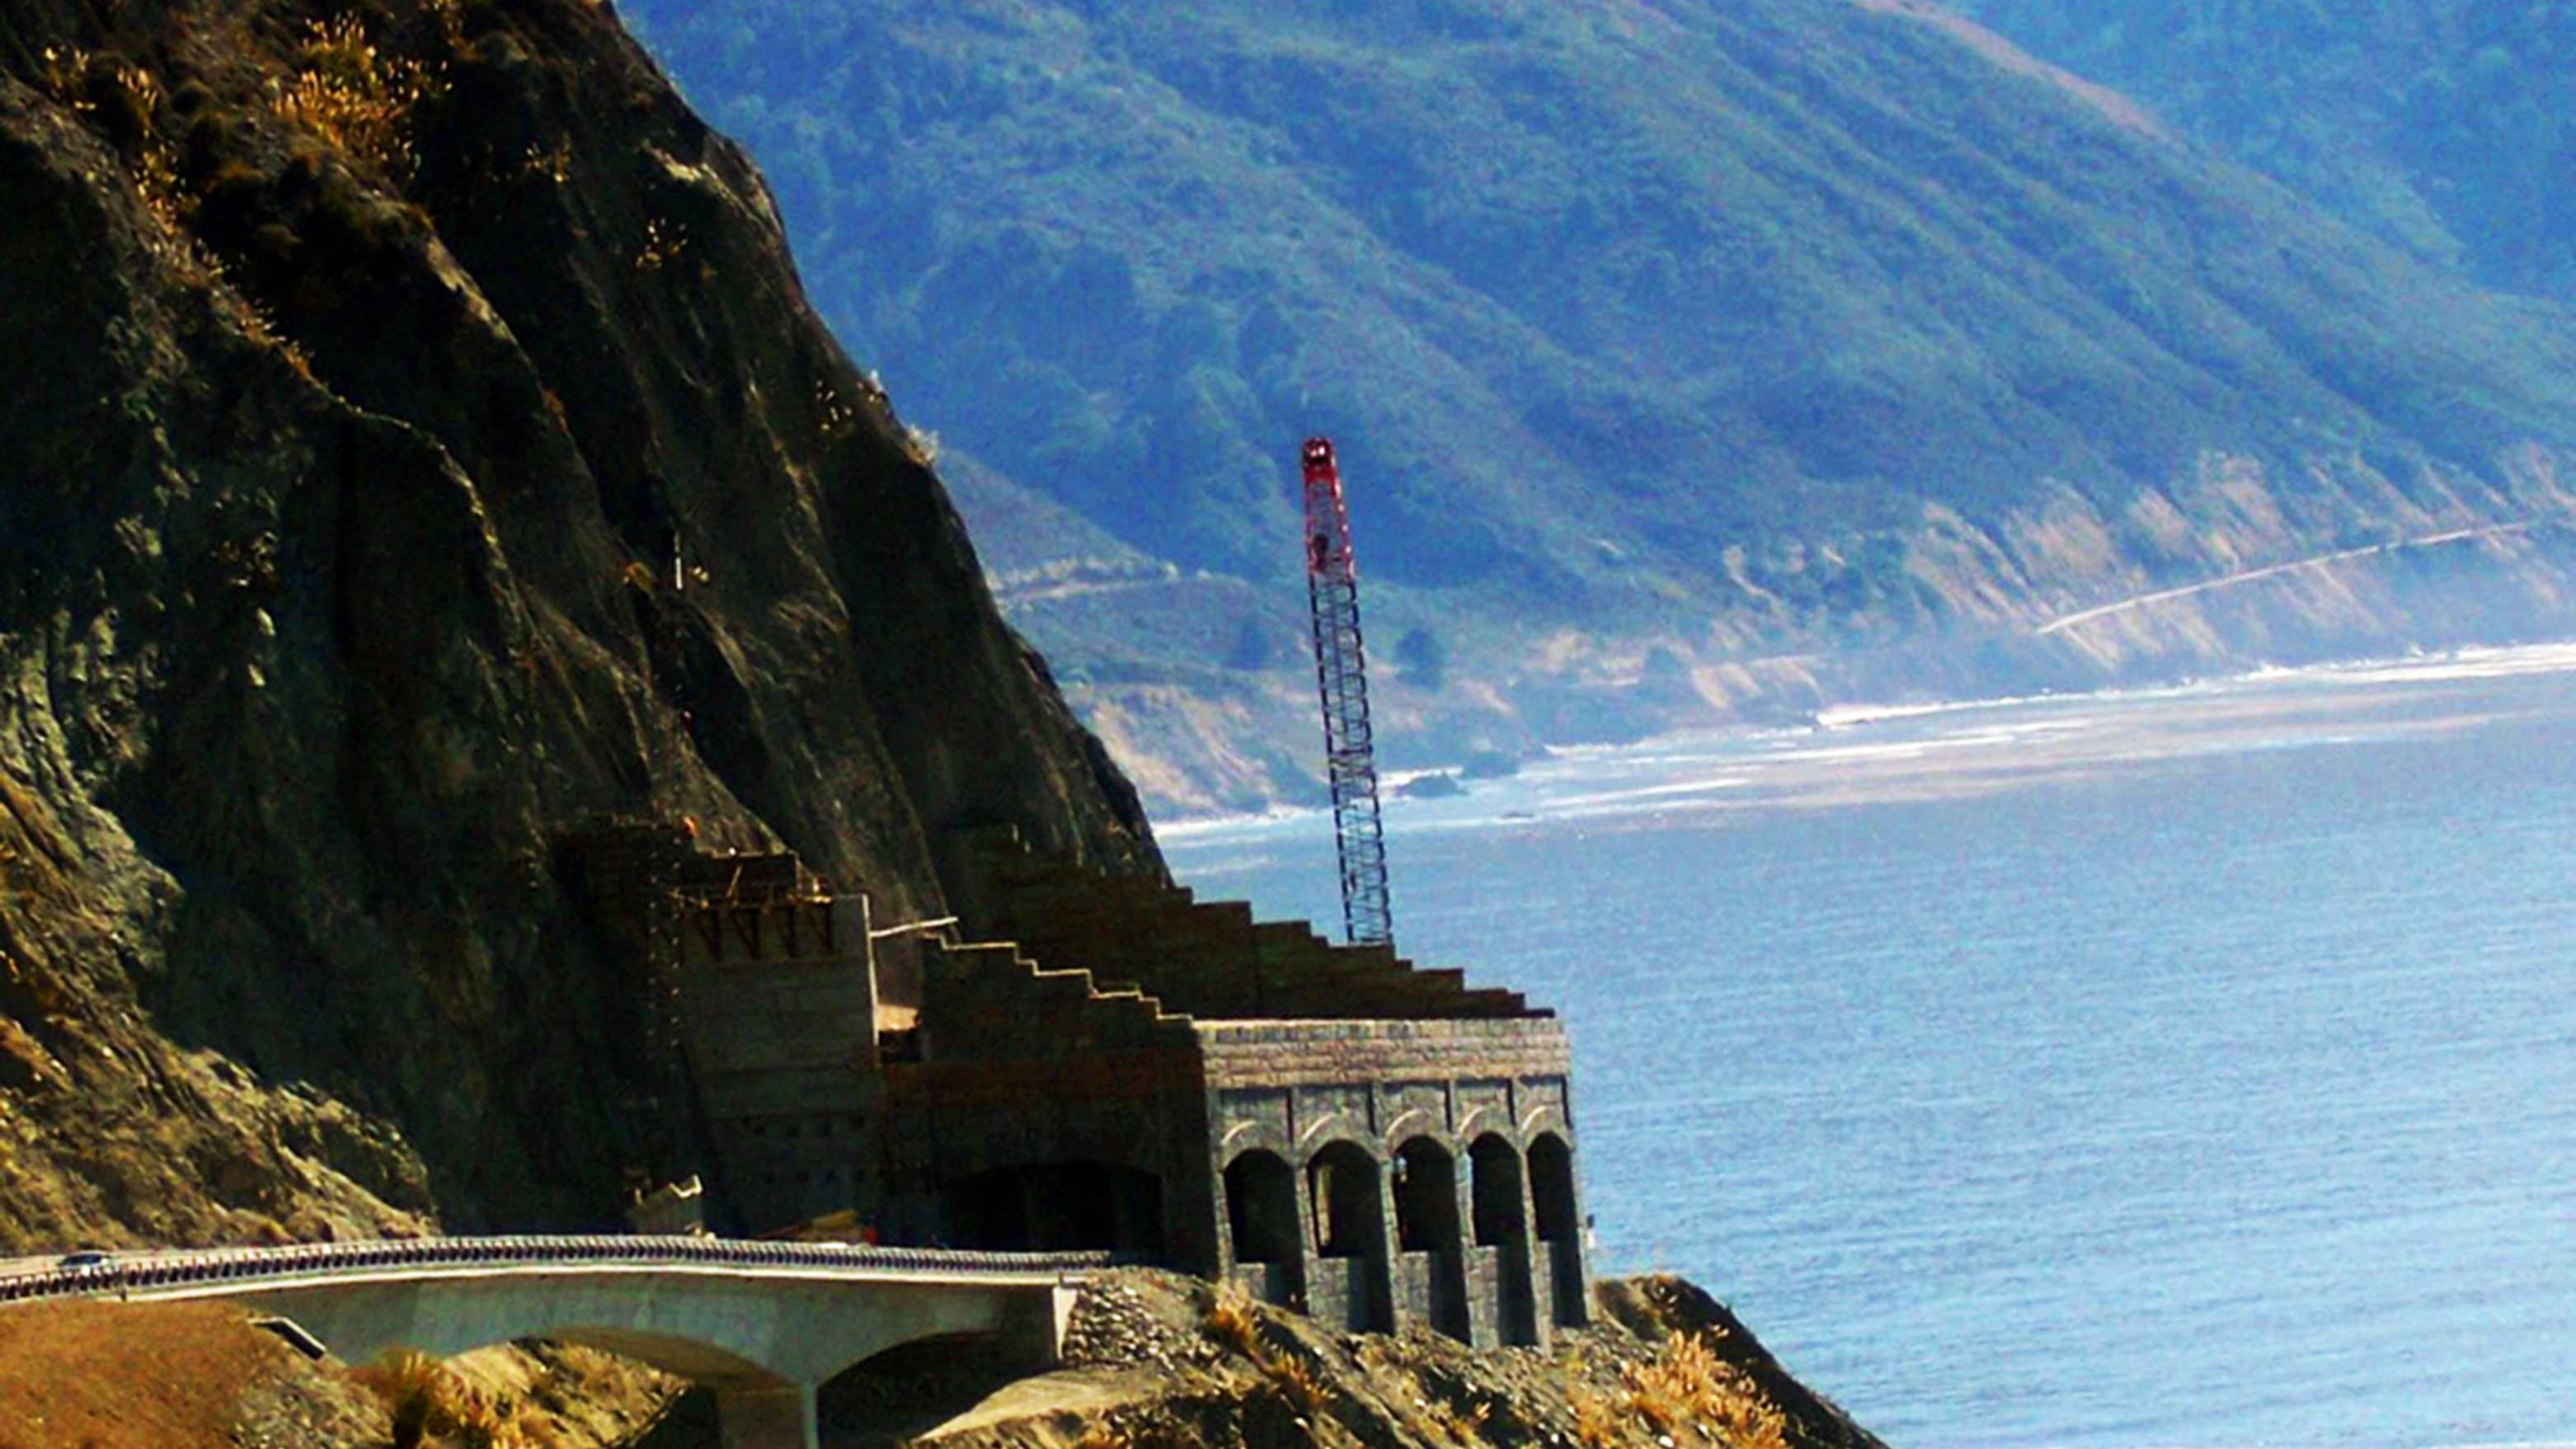 CalTrans completed building the Pitkins Curve bridge south of Big Sur this week.